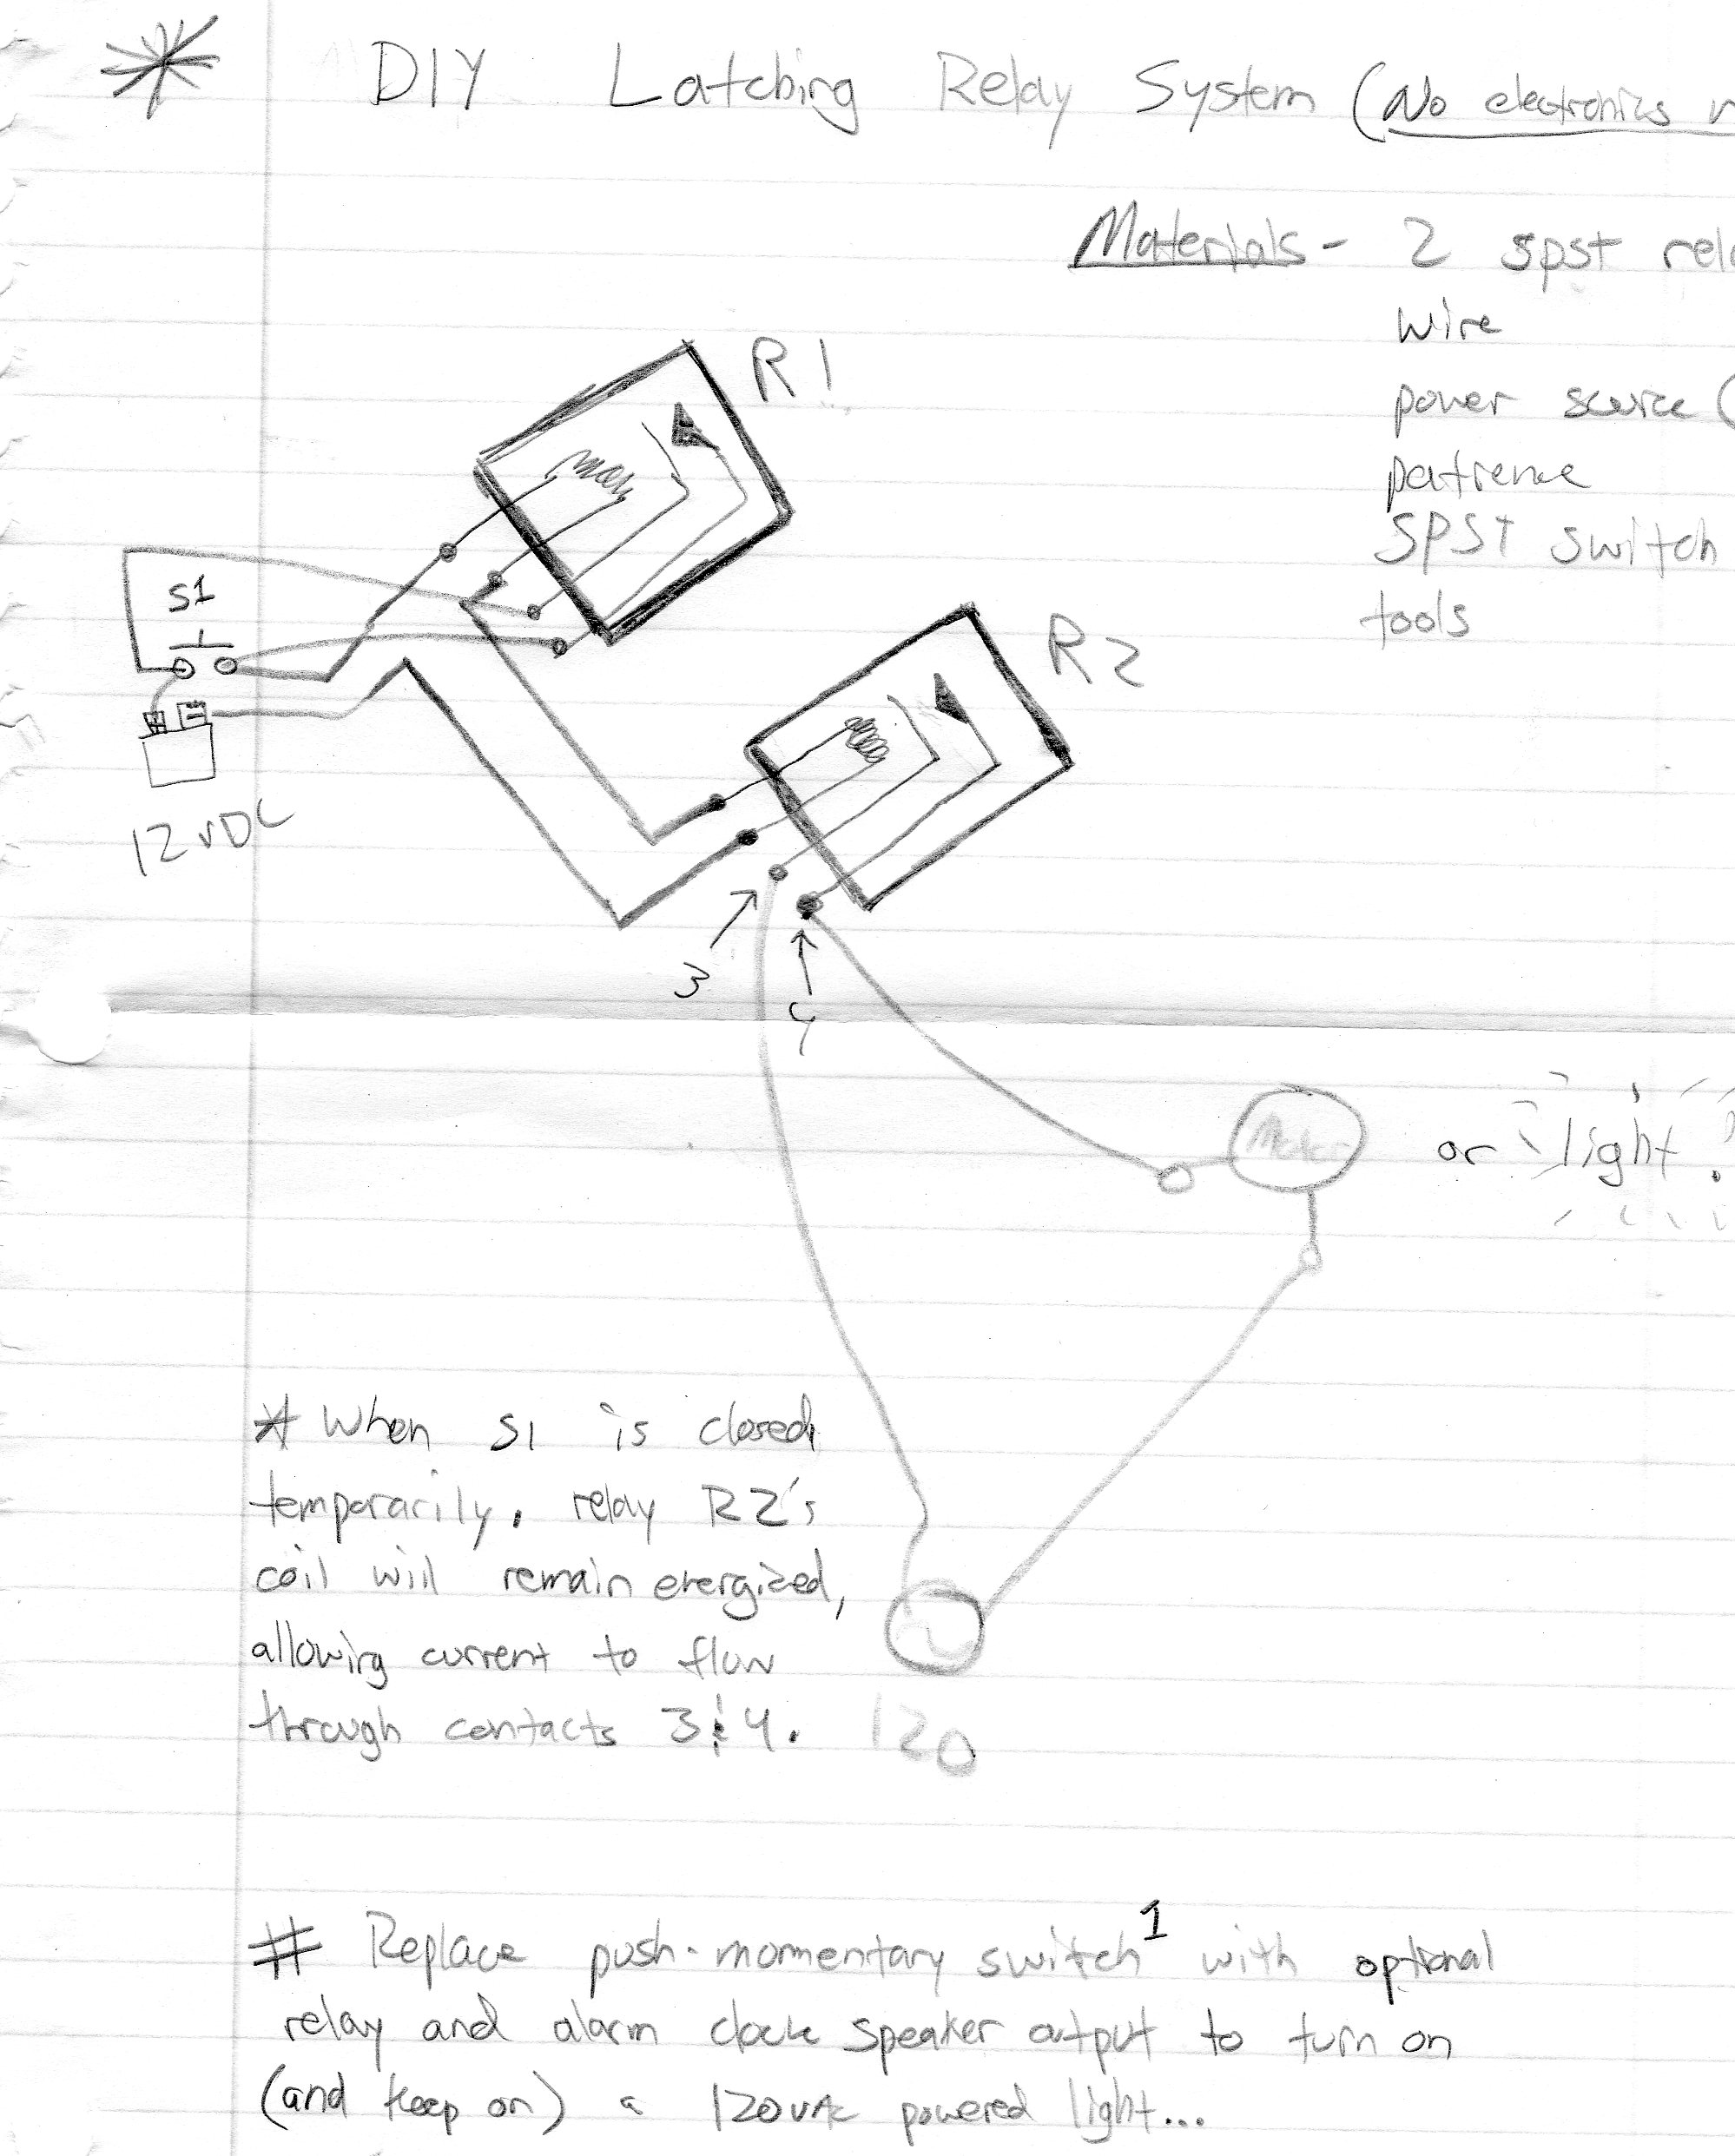 Latching Relay Wiring Diagram from cdn.instructables.com